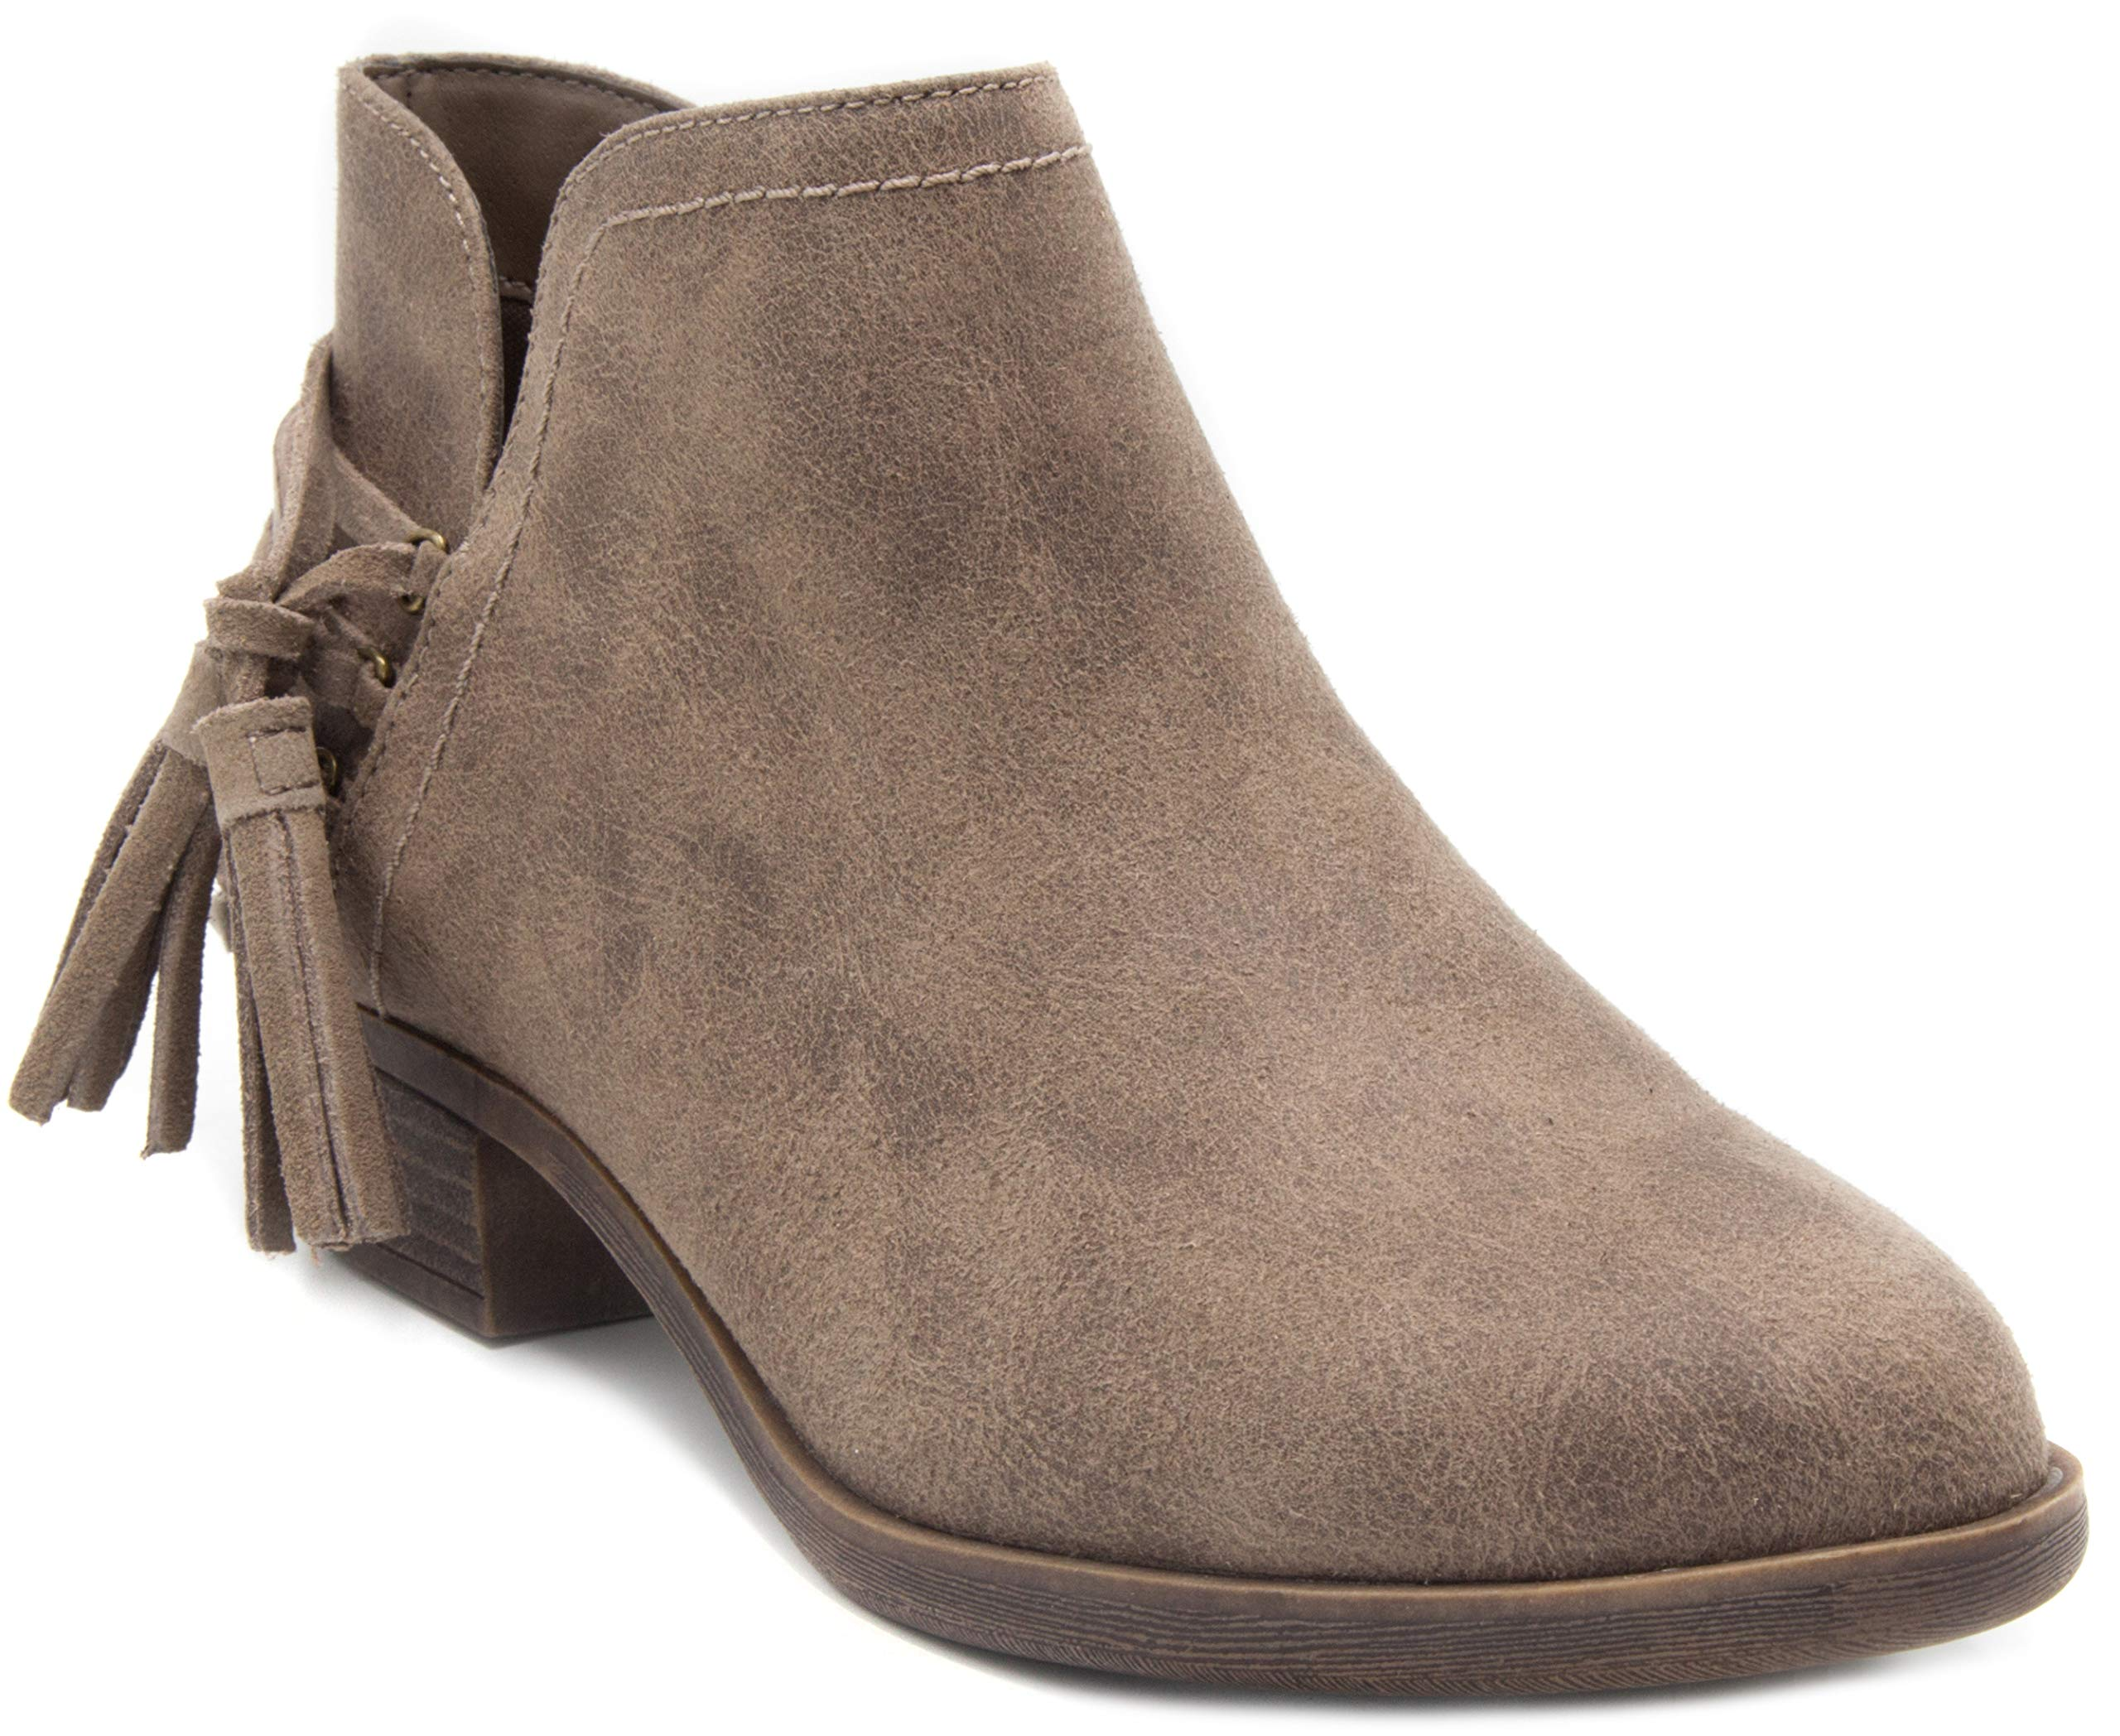 Sugar Women's Trusted Block Heel Ankle Boot Strappy Ladies Bootie with Tassels Taupe 7